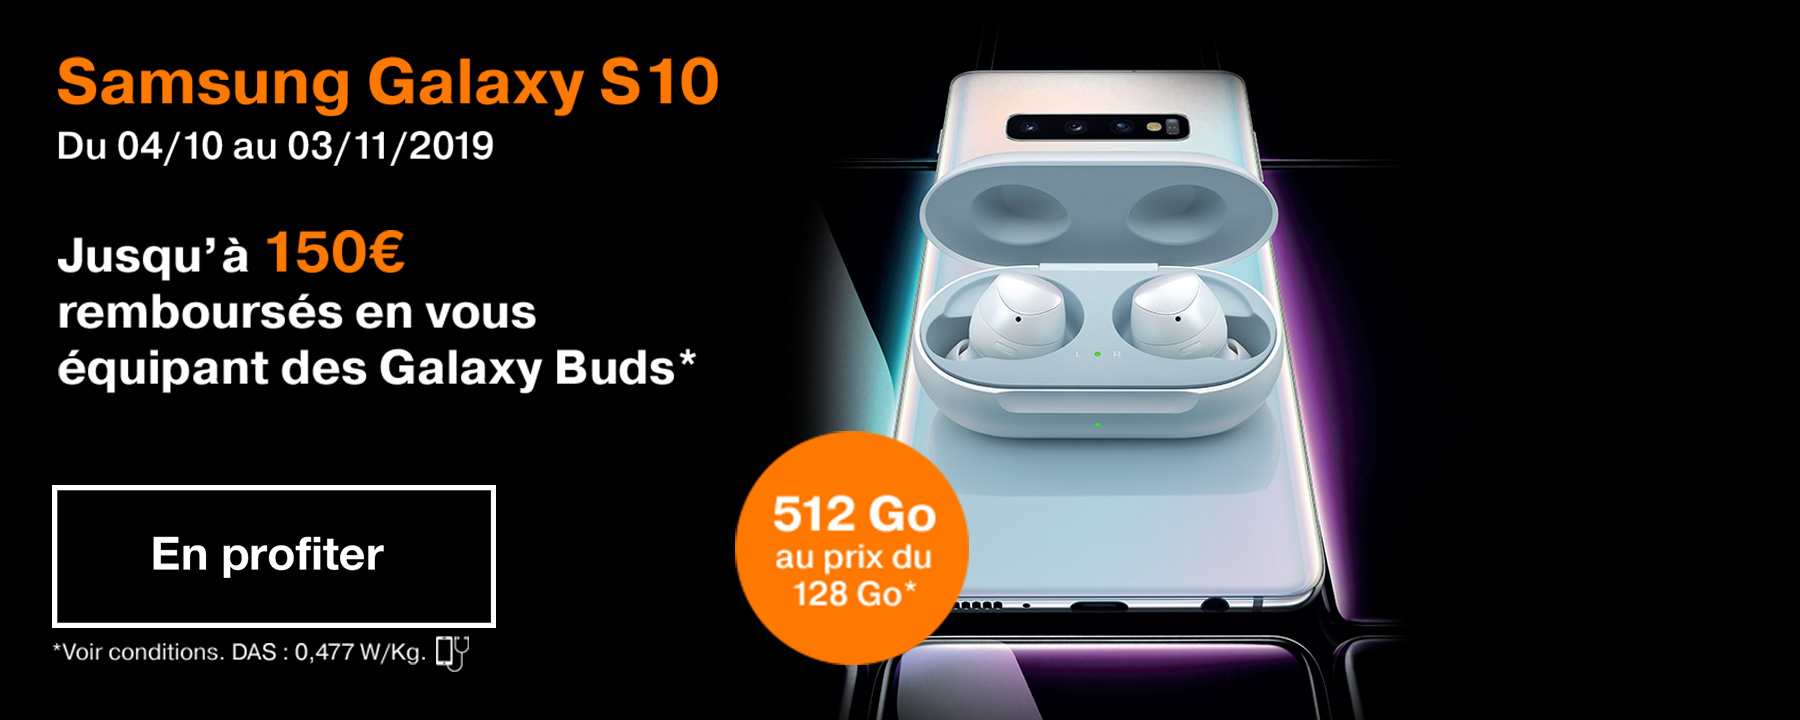 Bon plan Samsung Galaxy S10